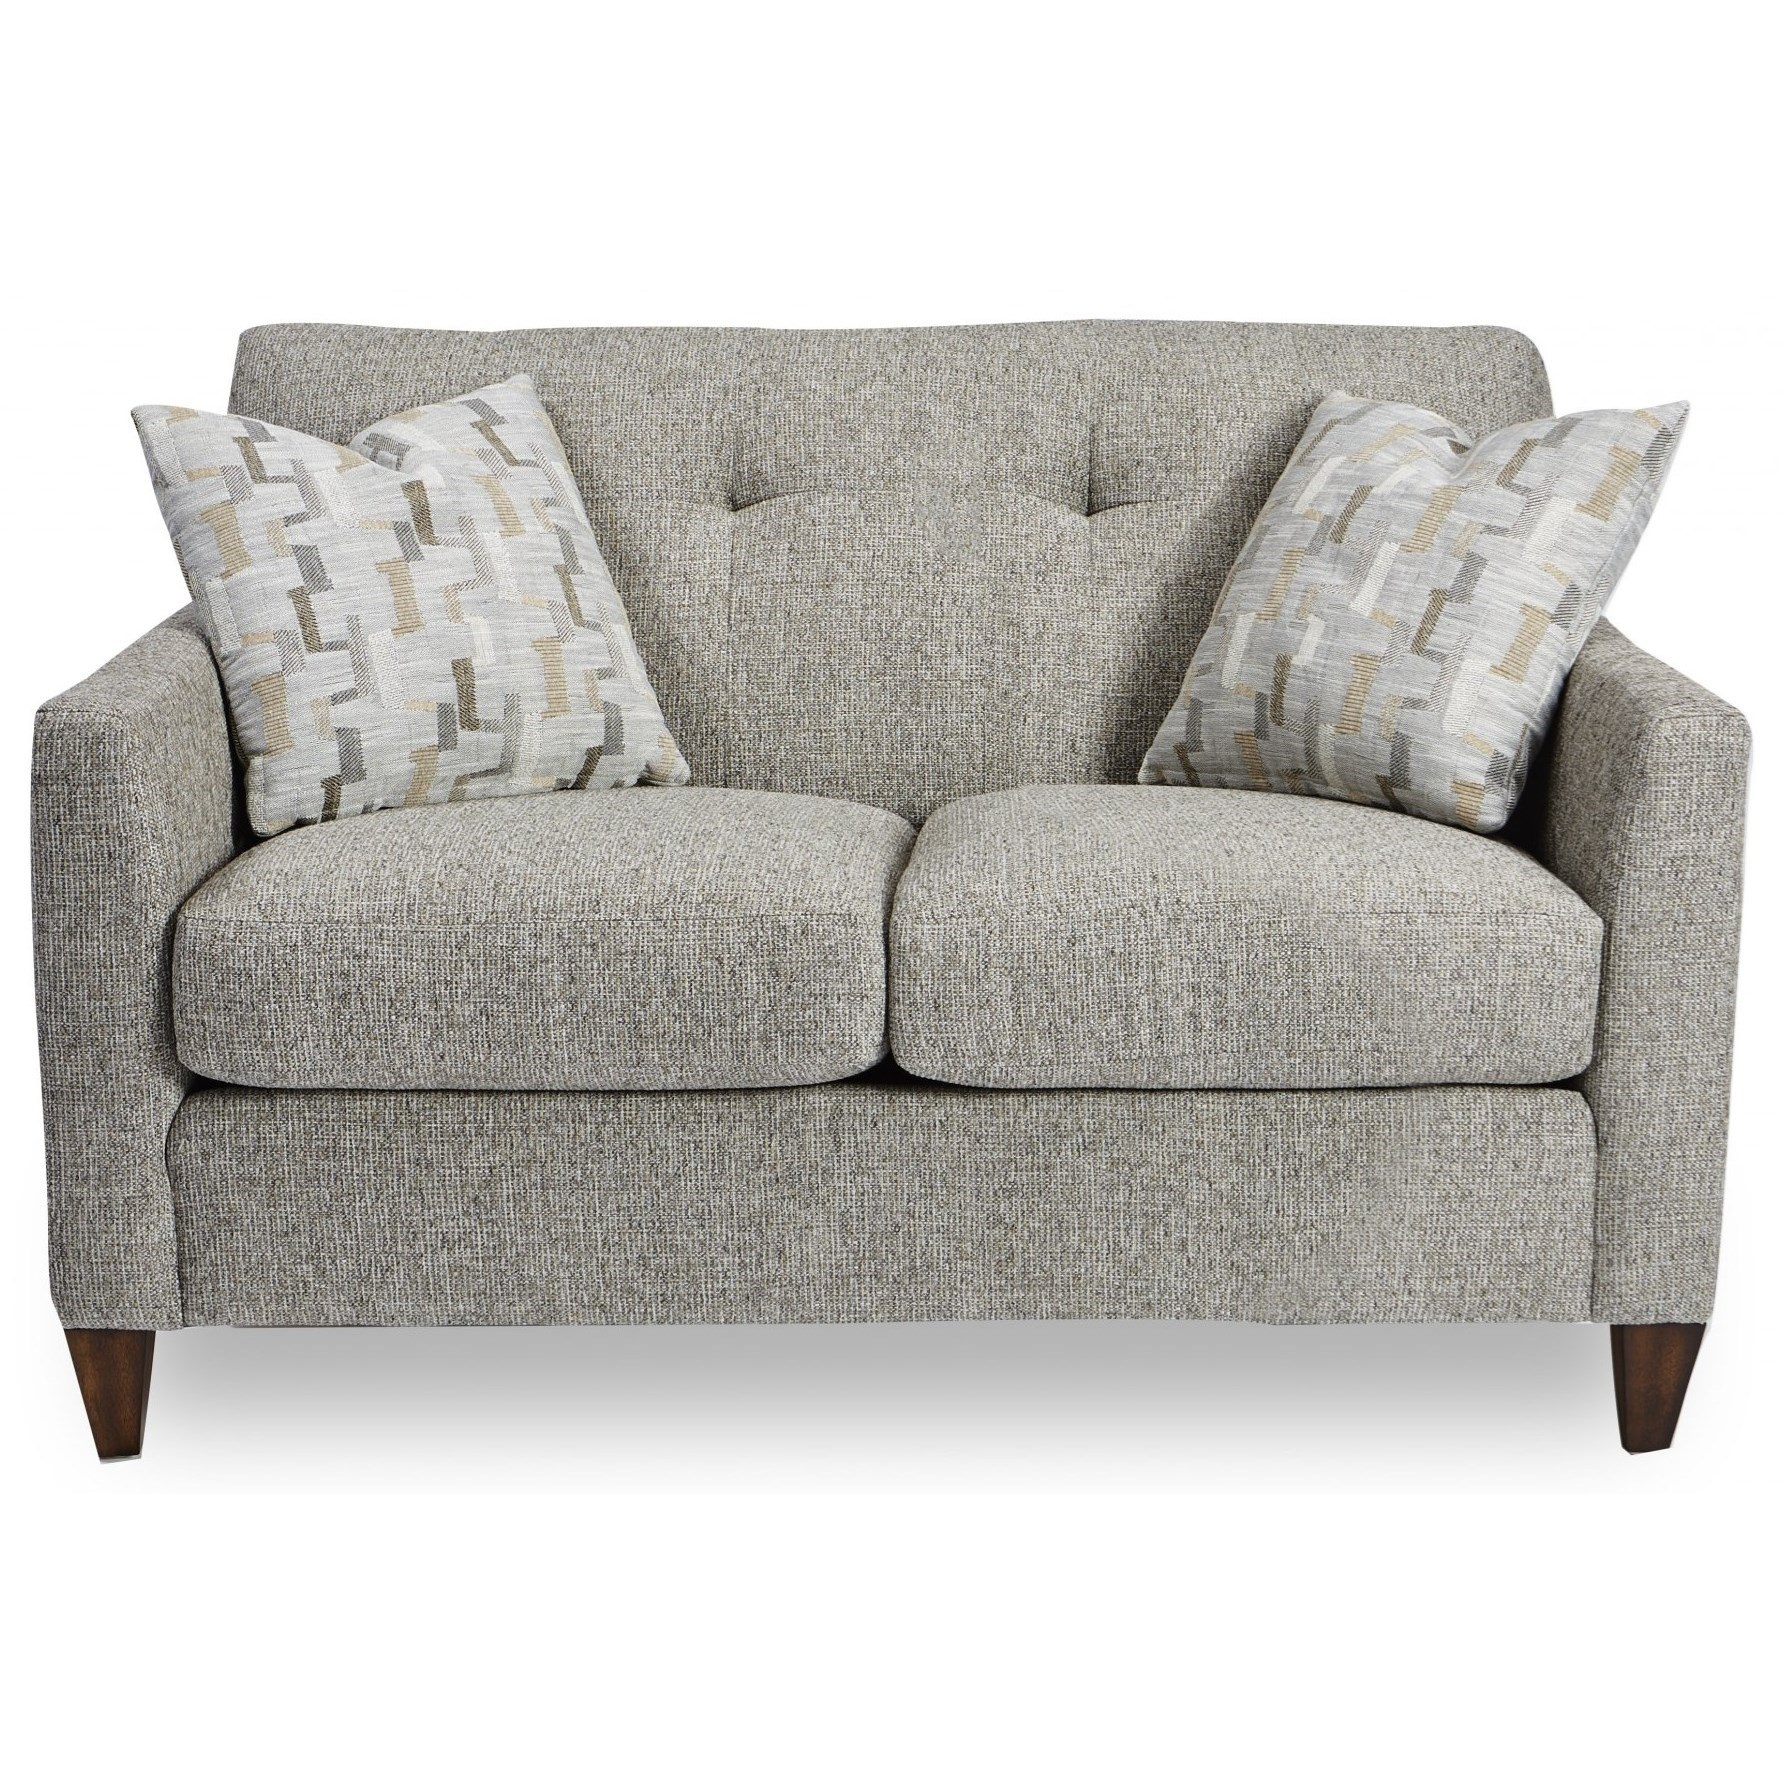 Sutton Loveseat  by Flexsteel at Virginia Furniture Market